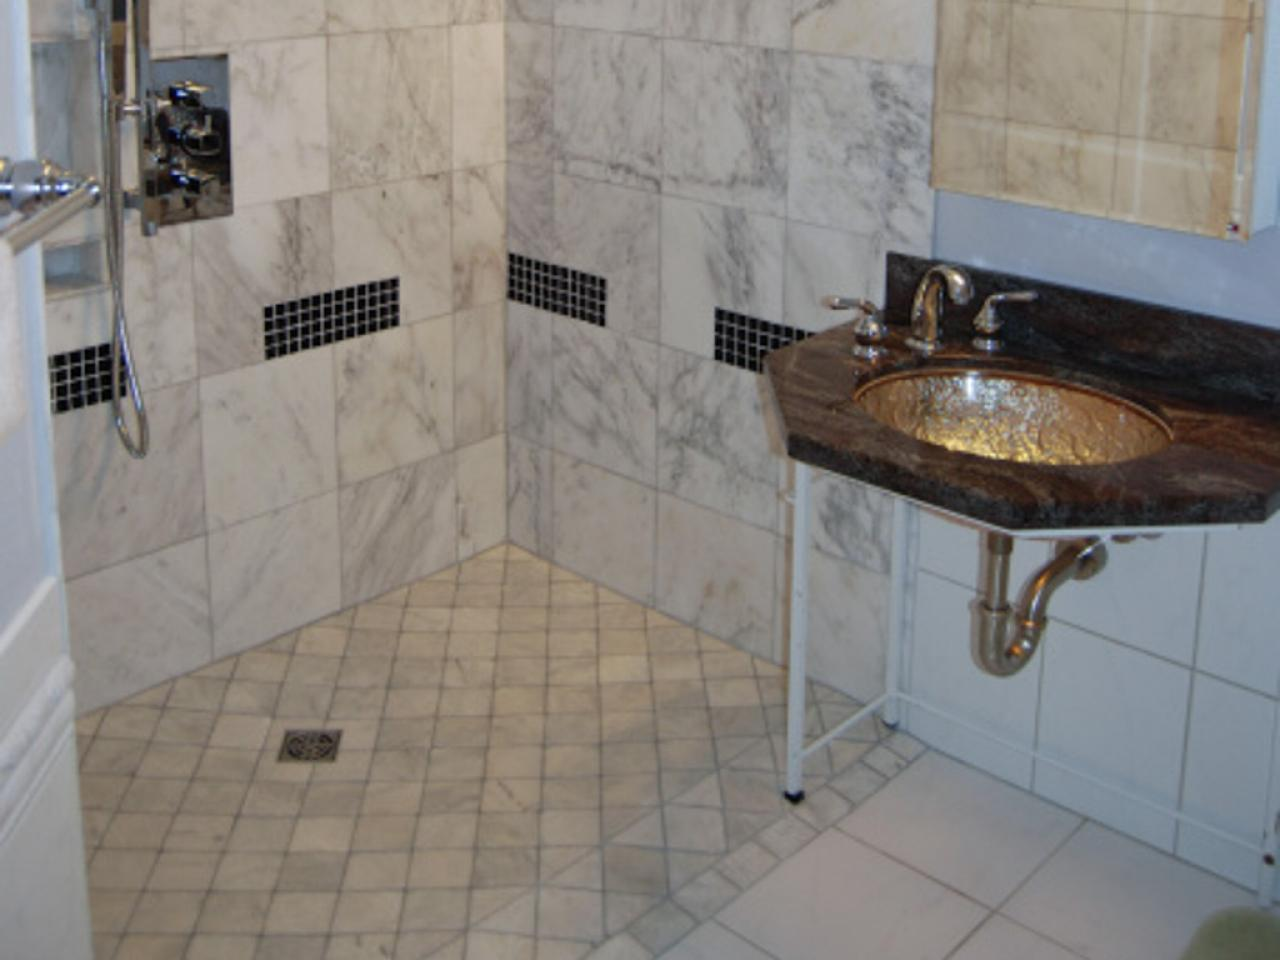 ADA Compliant Bathroom Layouts